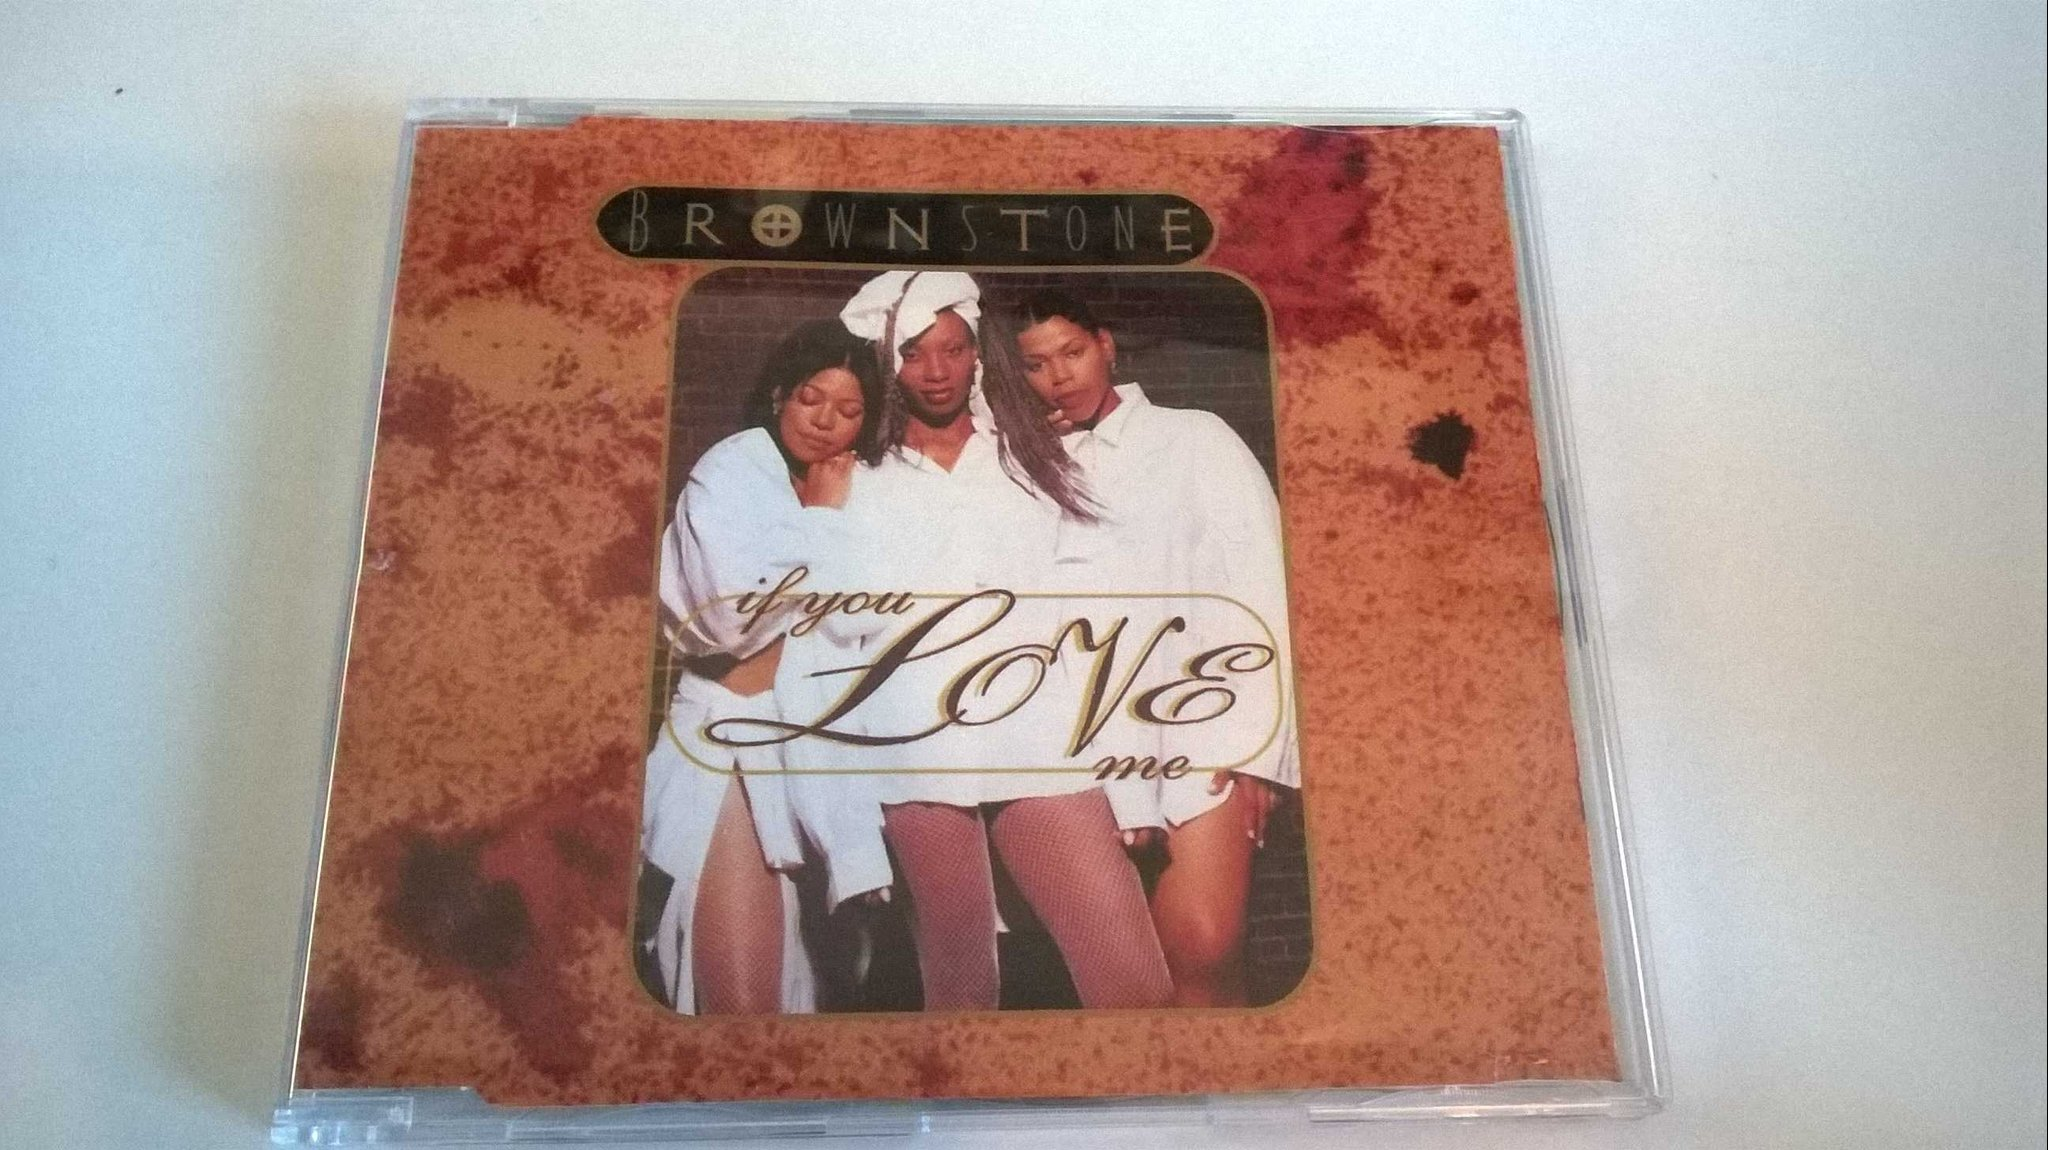 Brownstone ?- If You Love Me, CD